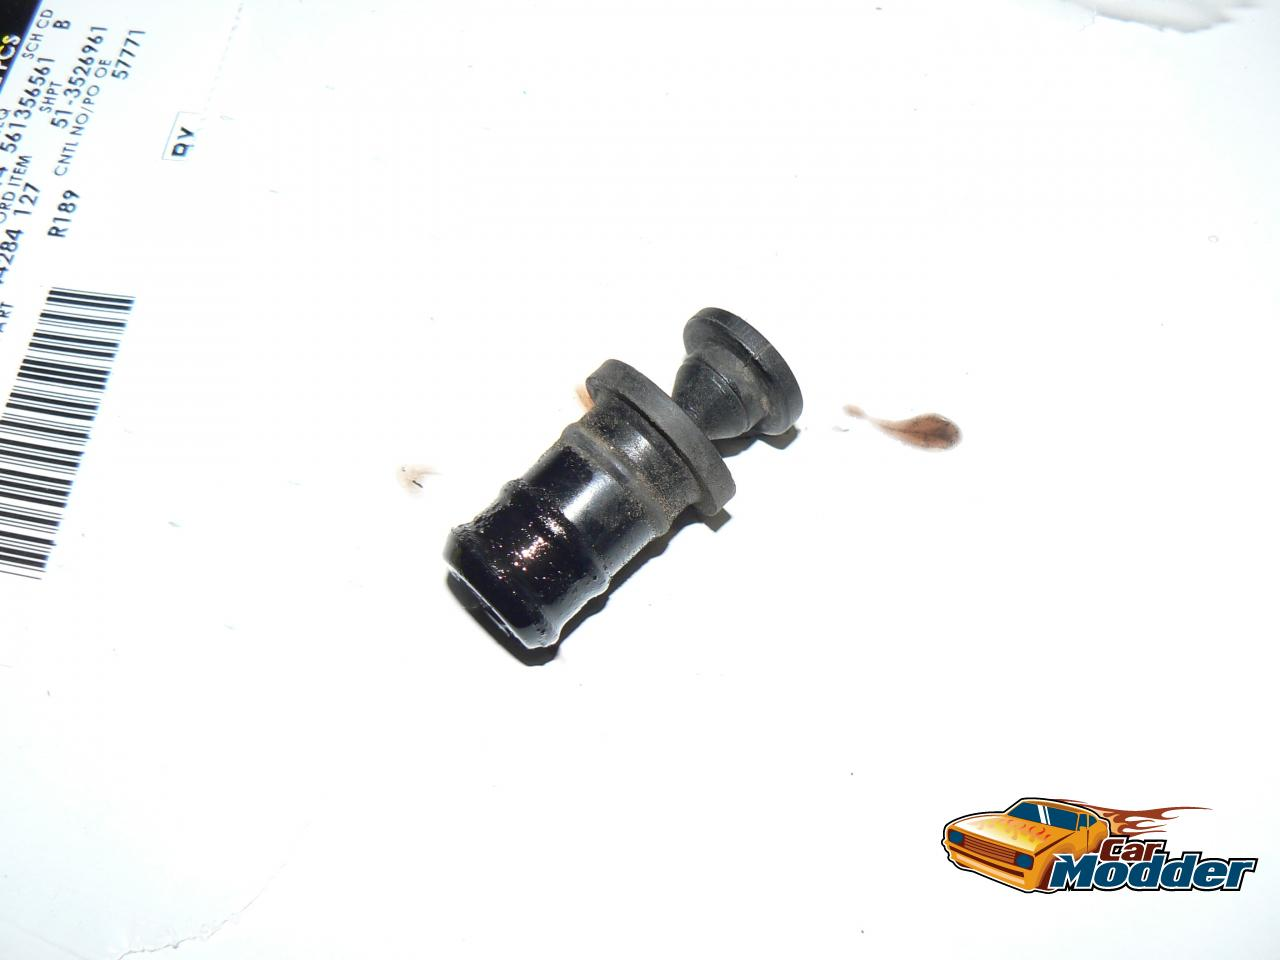 www carmodder com • Deep Pan 6L80 Transmission Mod for the